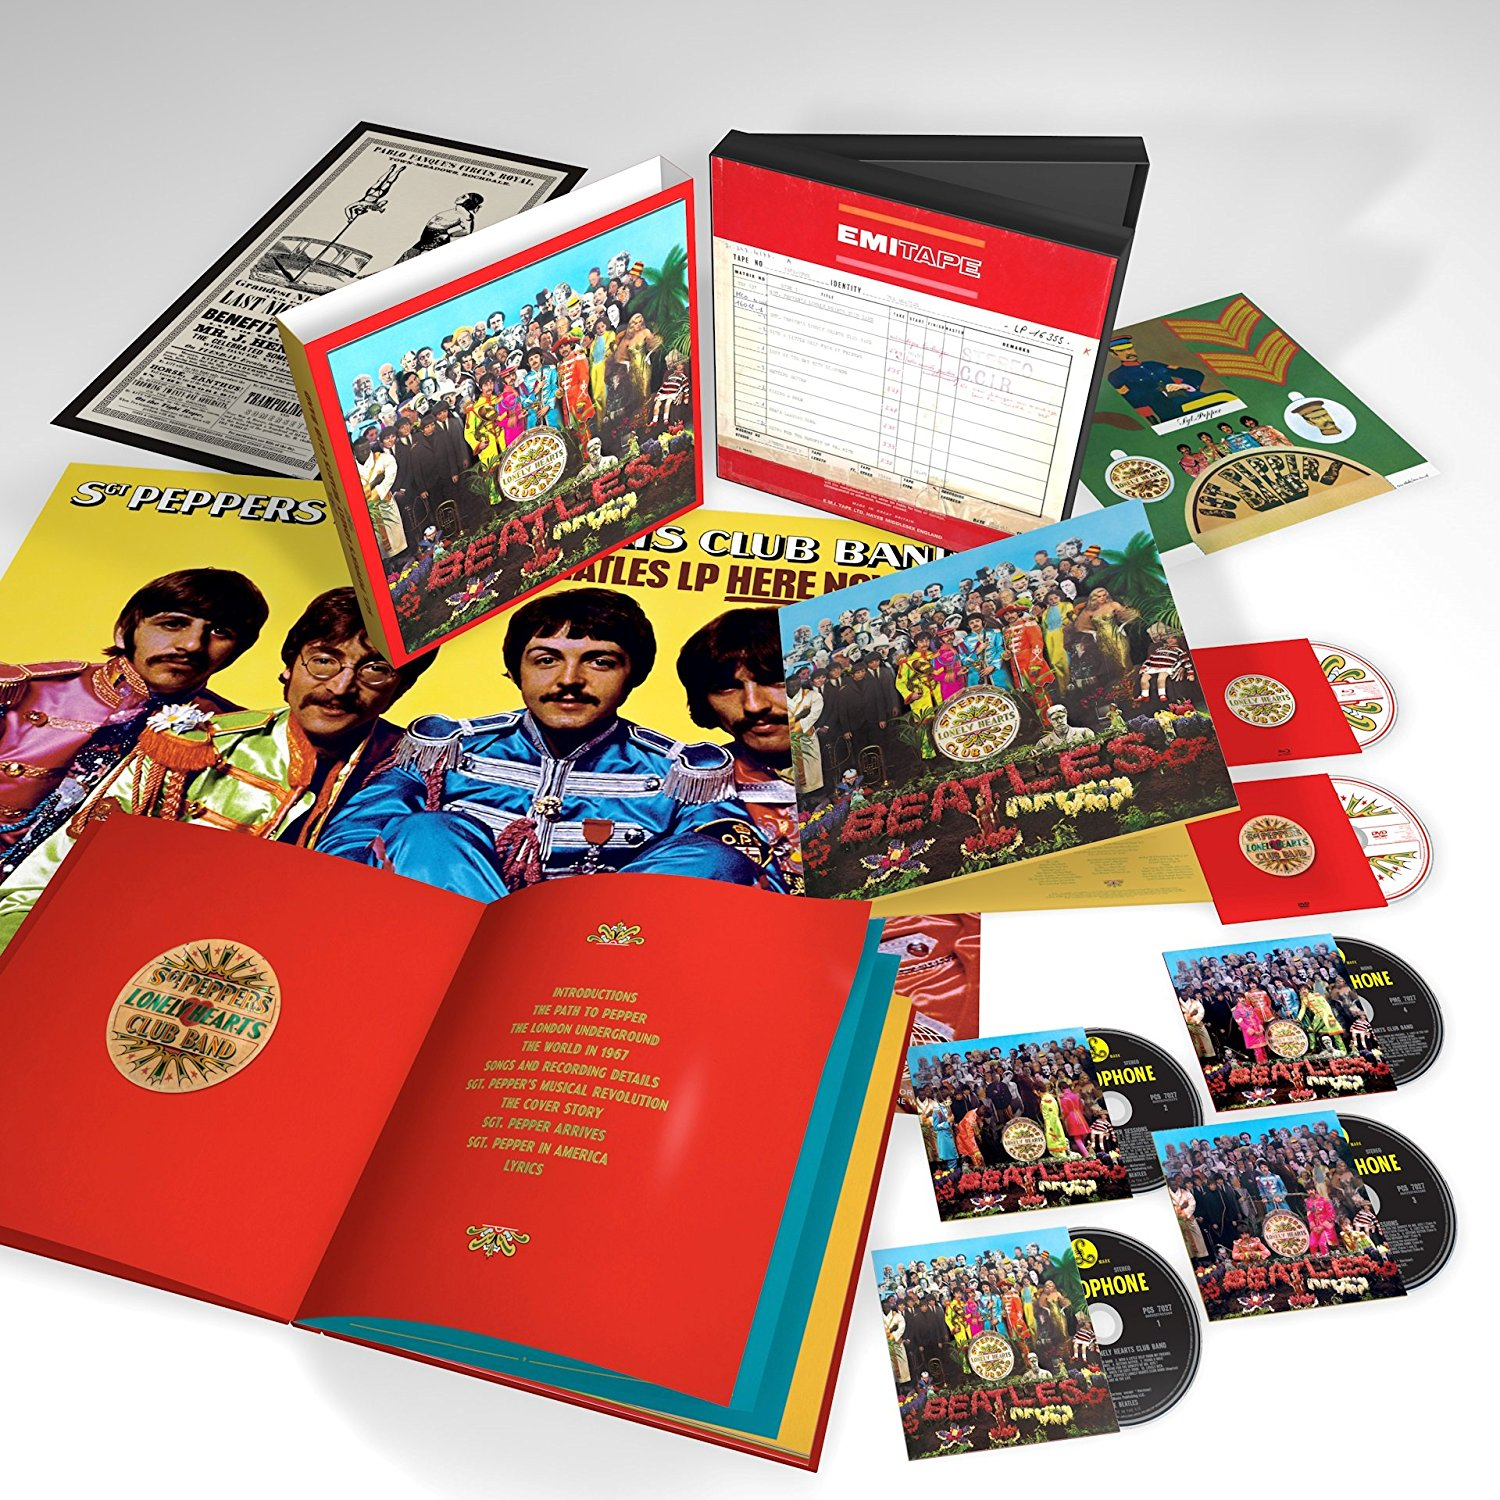 The Beatles / Sgt. Pepper's Lonely Hearts Club Band 50th anniversary six-disc super deluxe edition box set